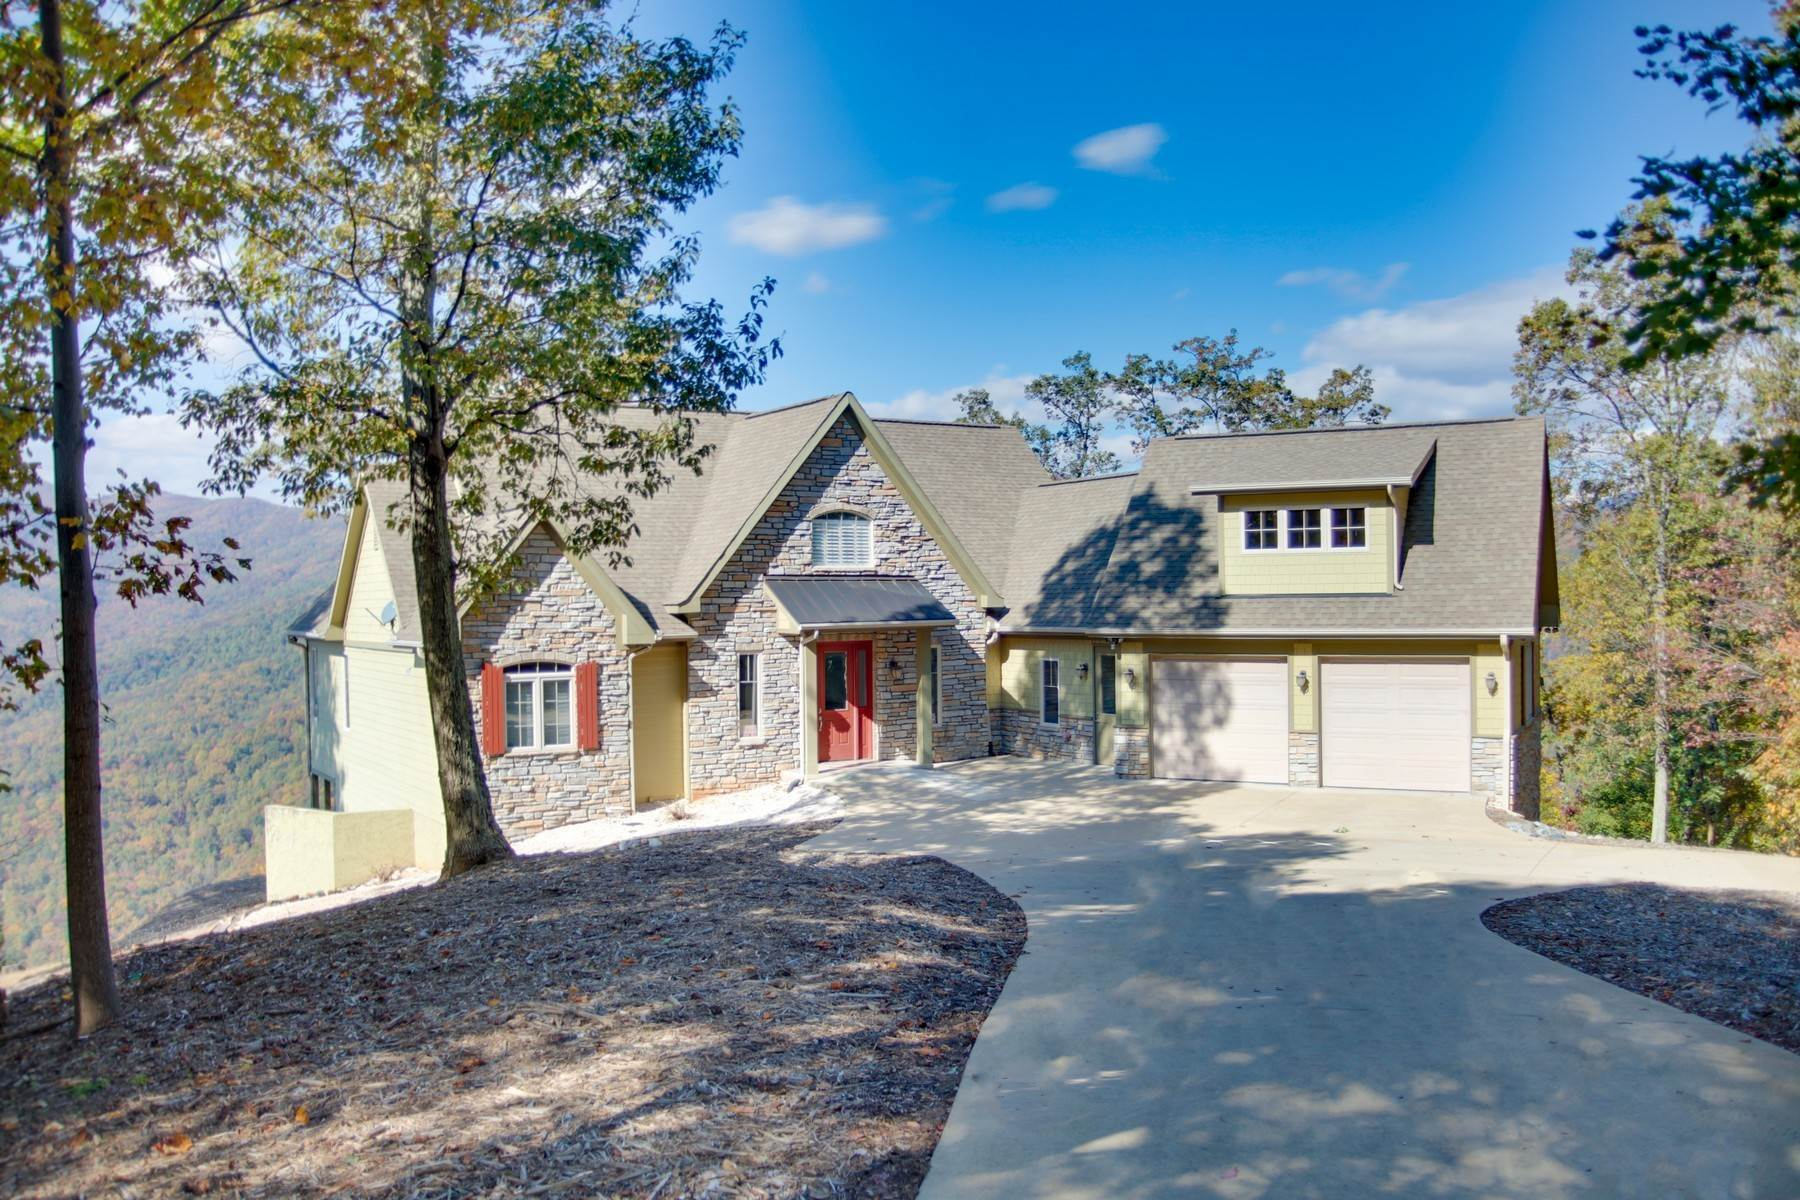 Single Family Homes for Sale at Remarkable Mountain Home 231 Tatanka Trail Lake Lure, North Carolina 28746 United States